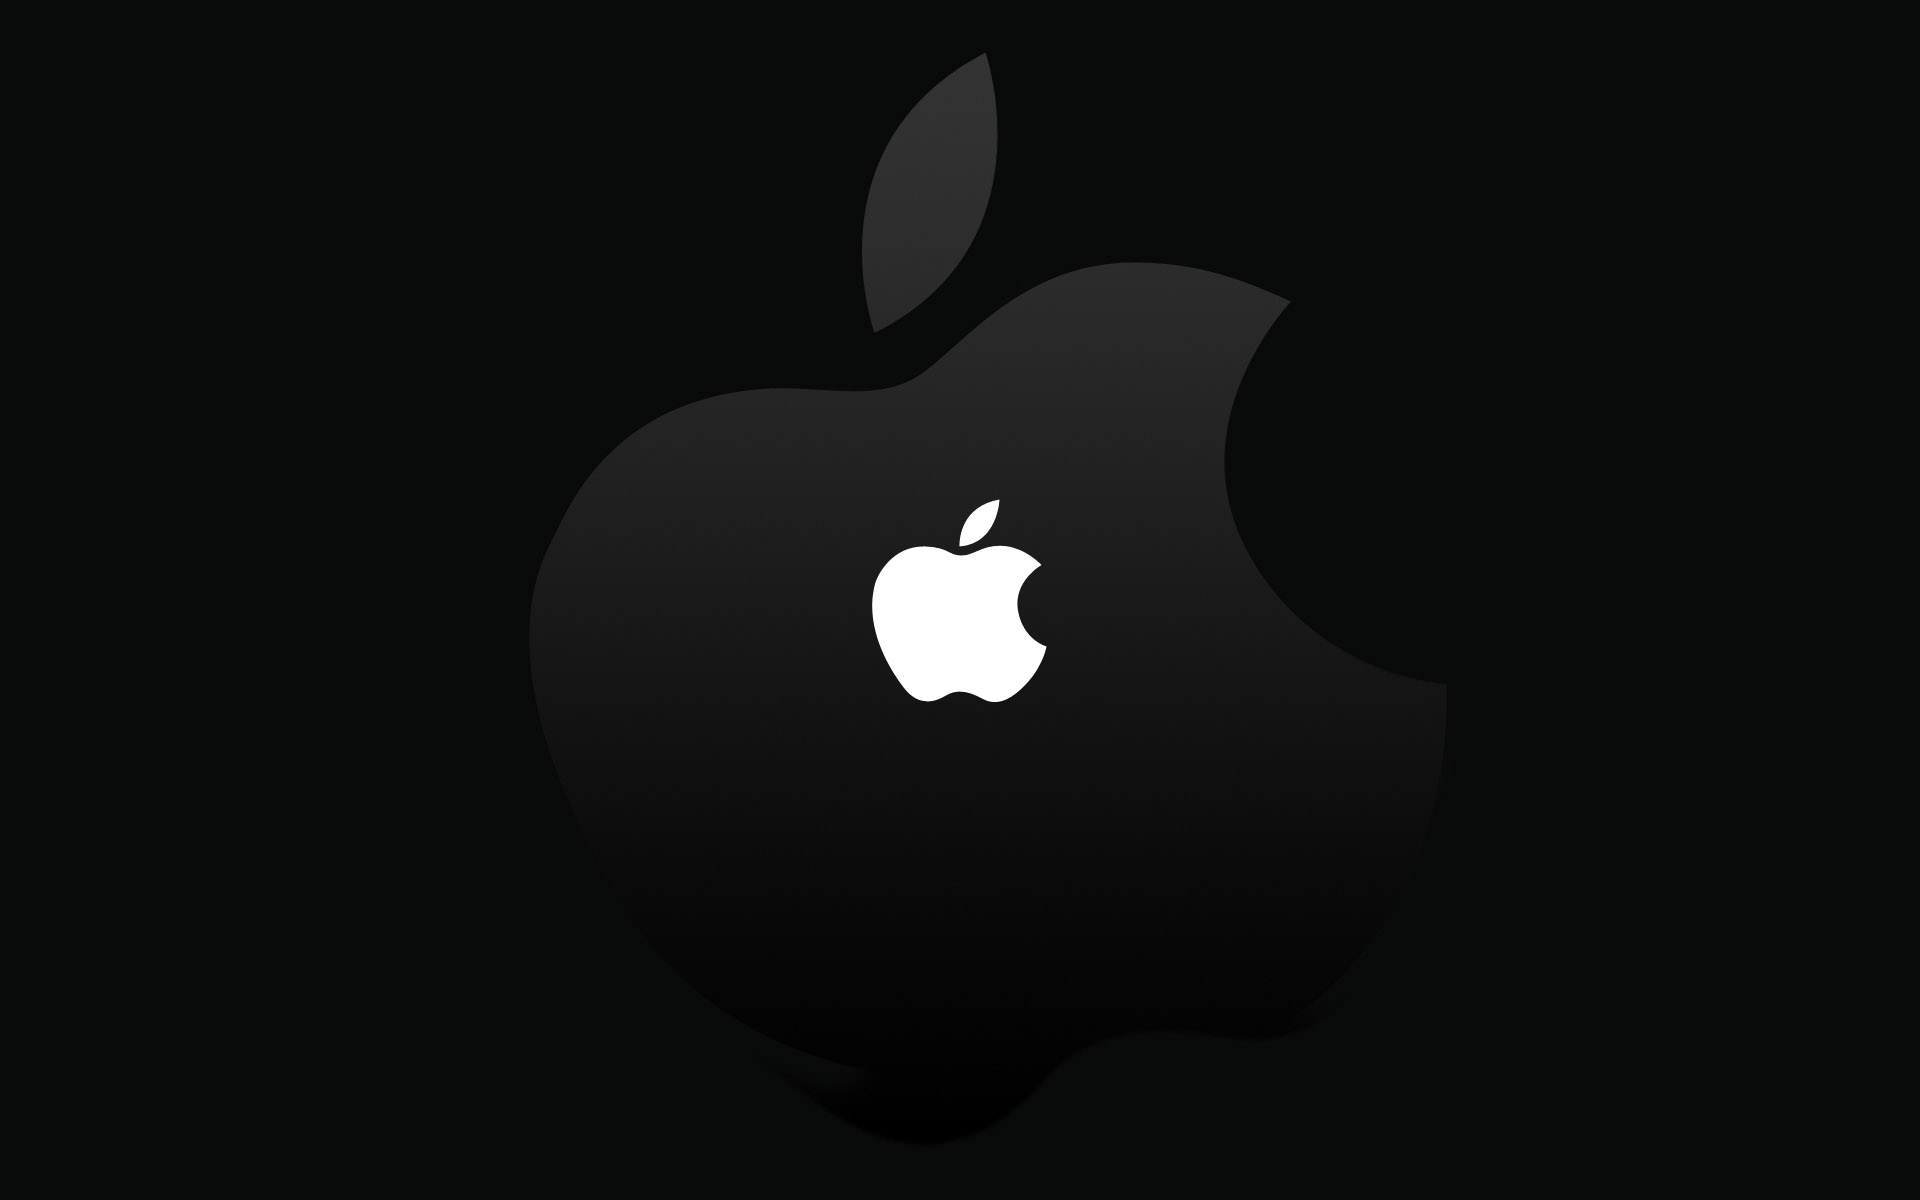 Black and White Apple Wallpaper 1920x1200